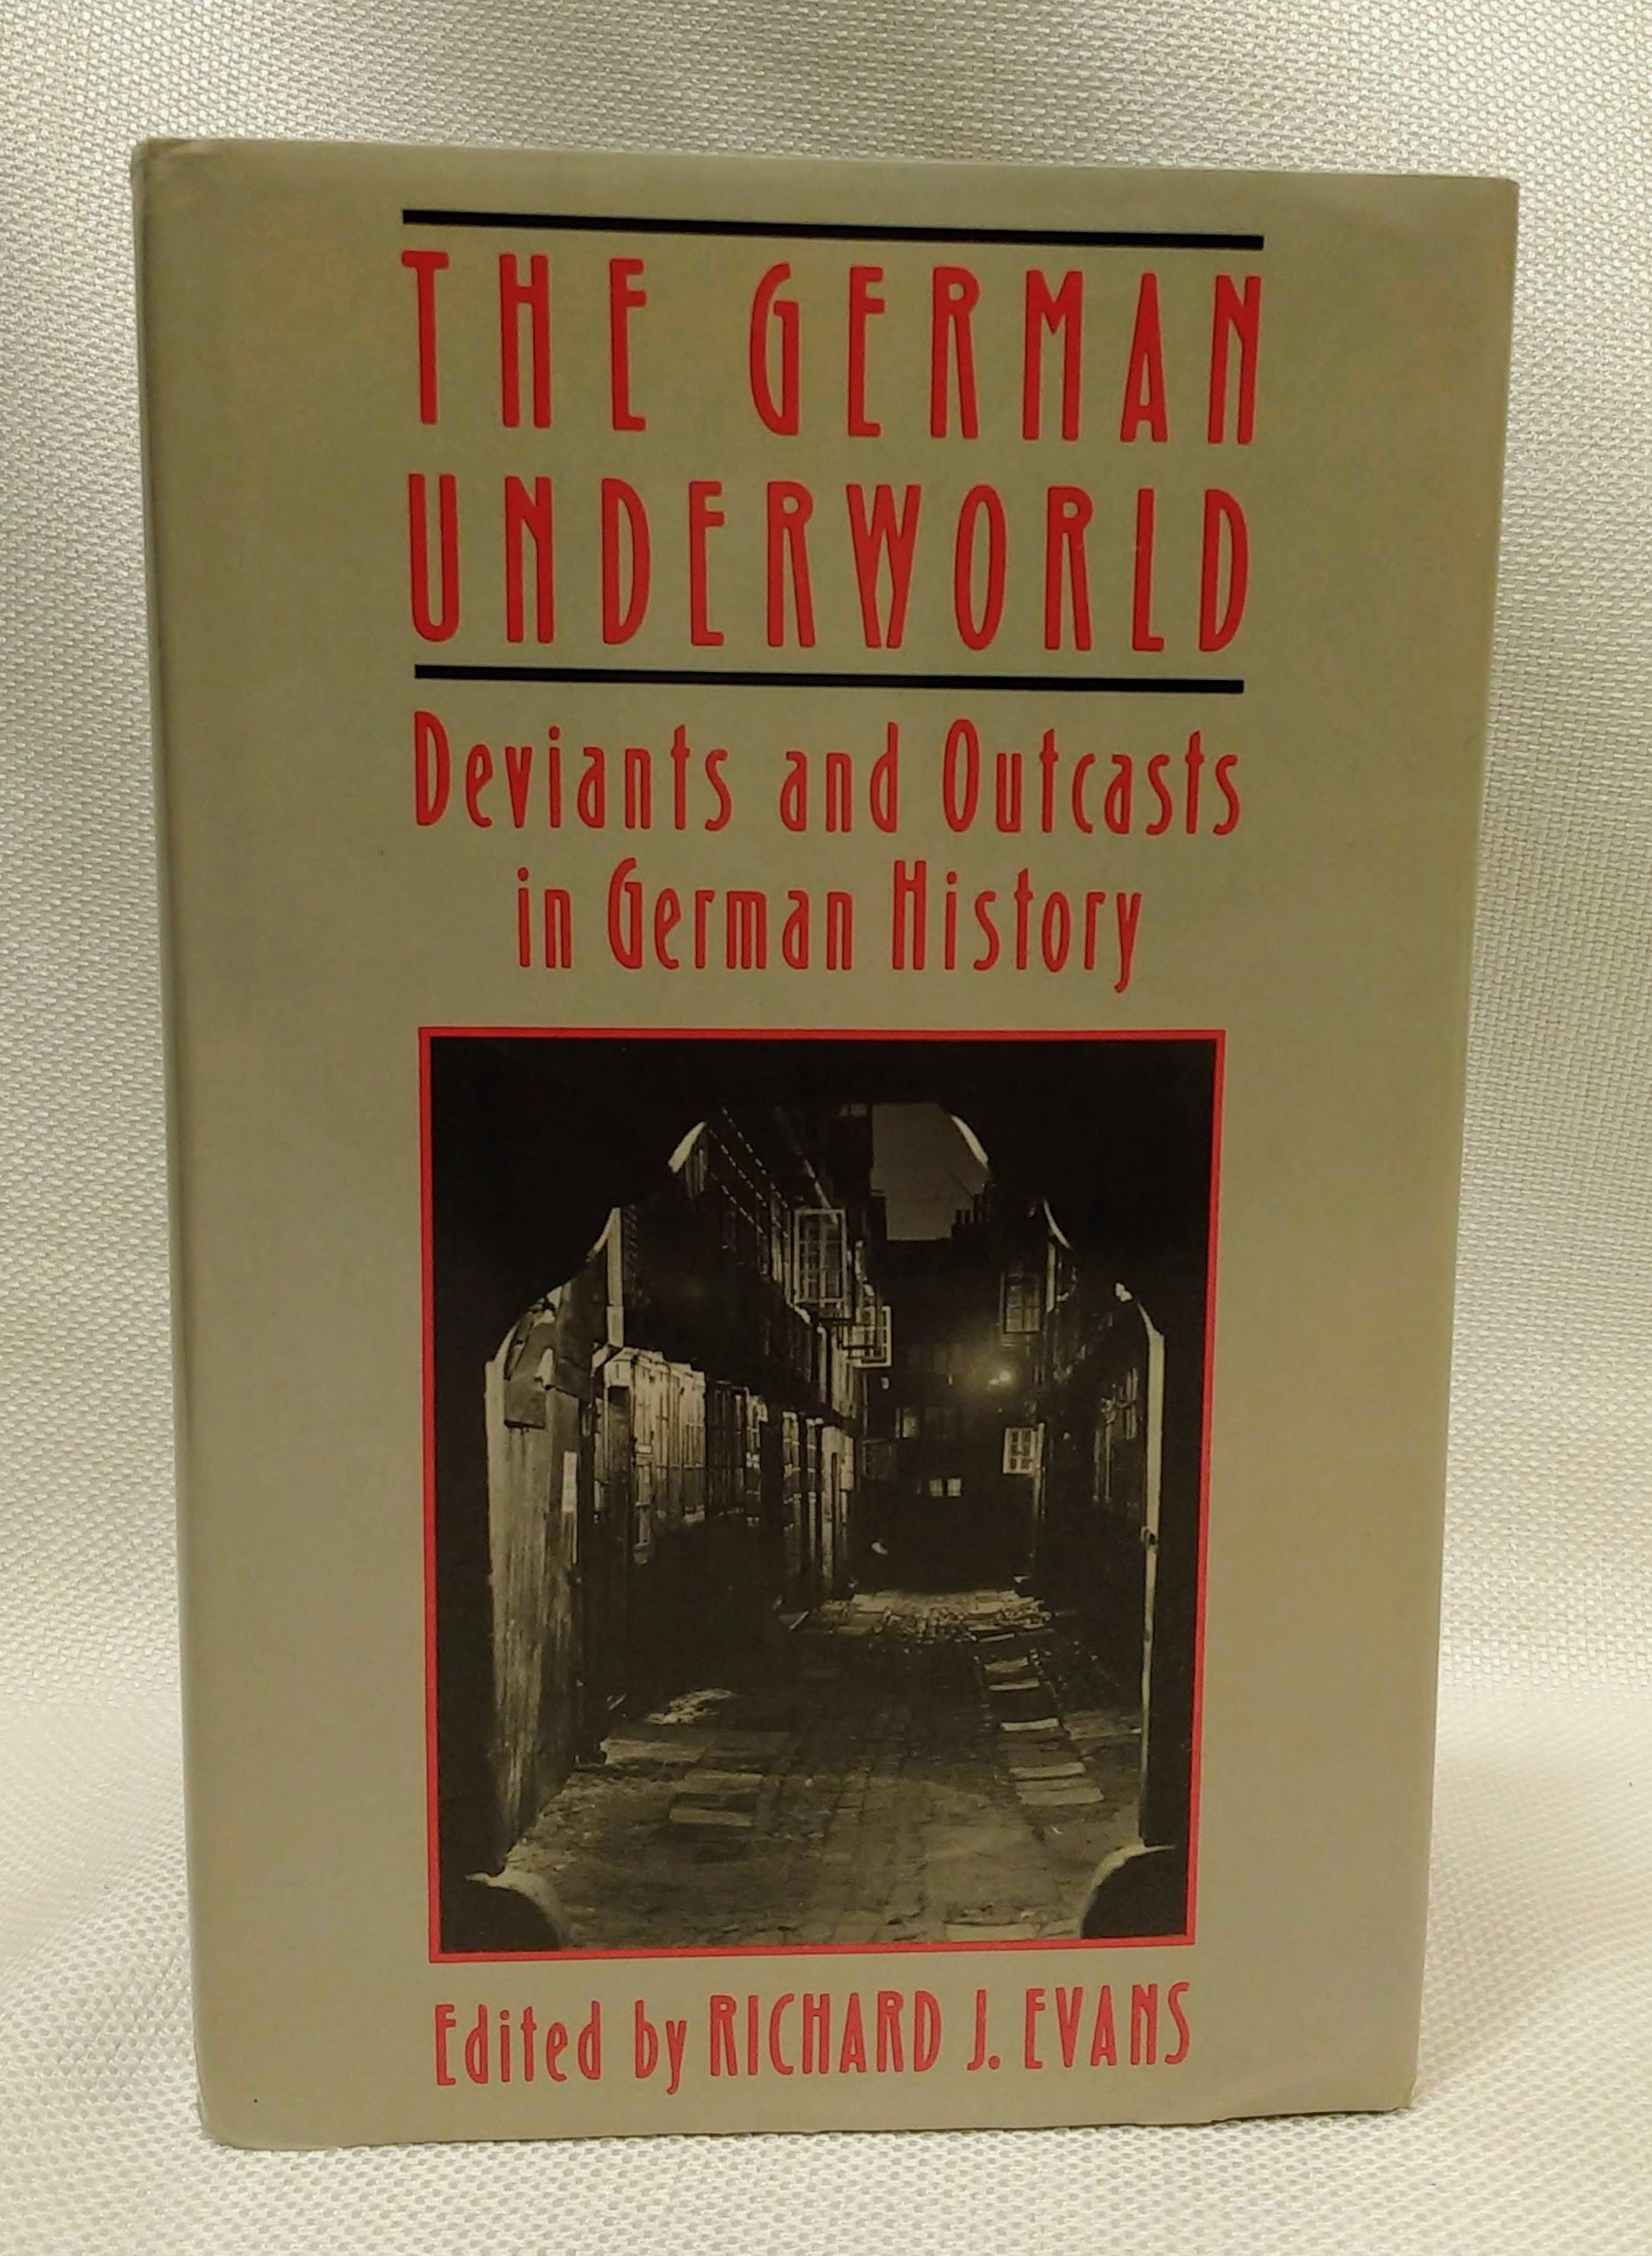 The German Underworld: Deviants and Outcasts in German History, Evans, Richard J. [Editor]